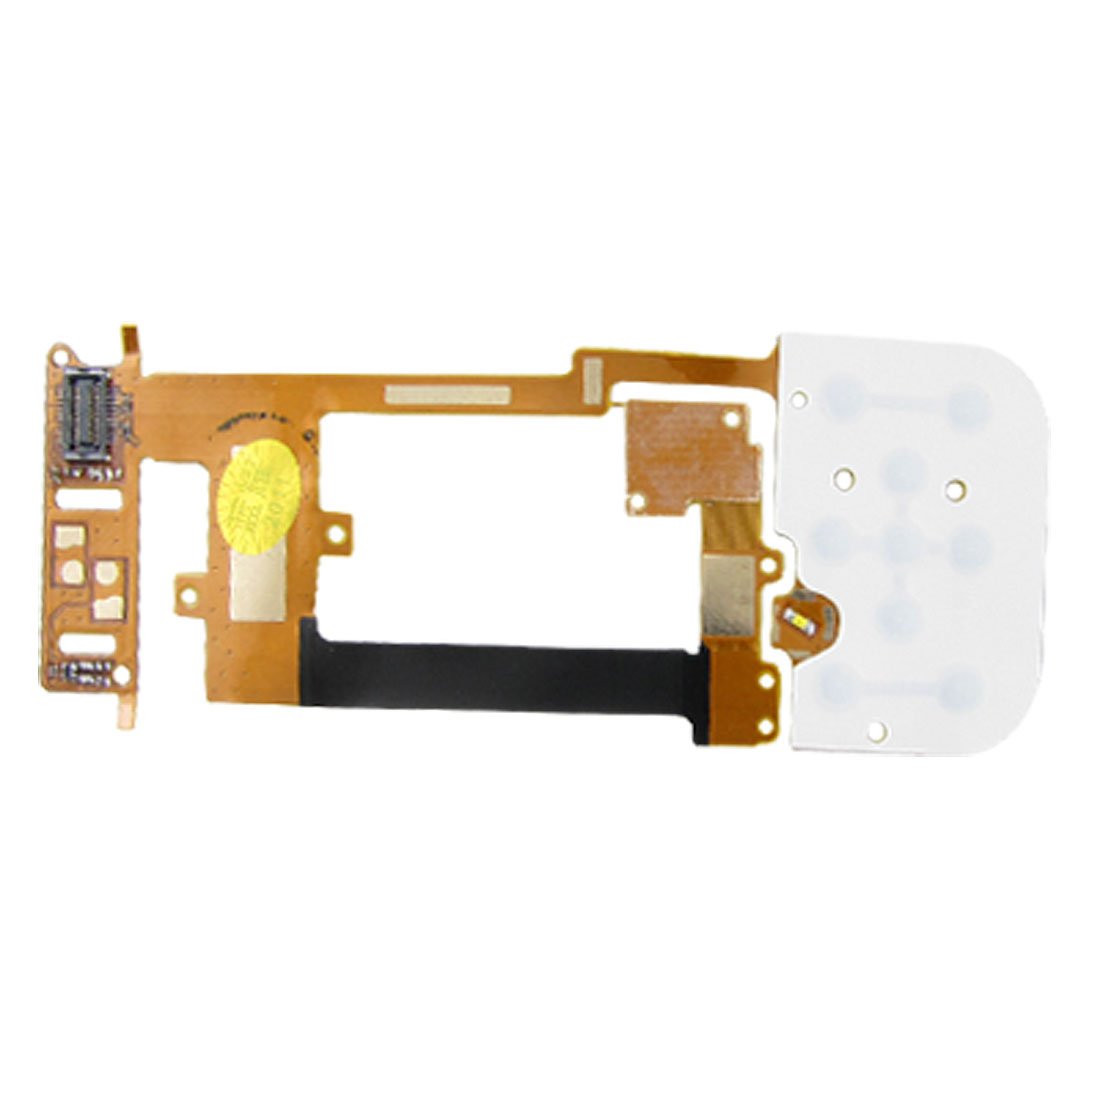 Repairing Keypad Keyboard Flex Cable for Nokia 2220